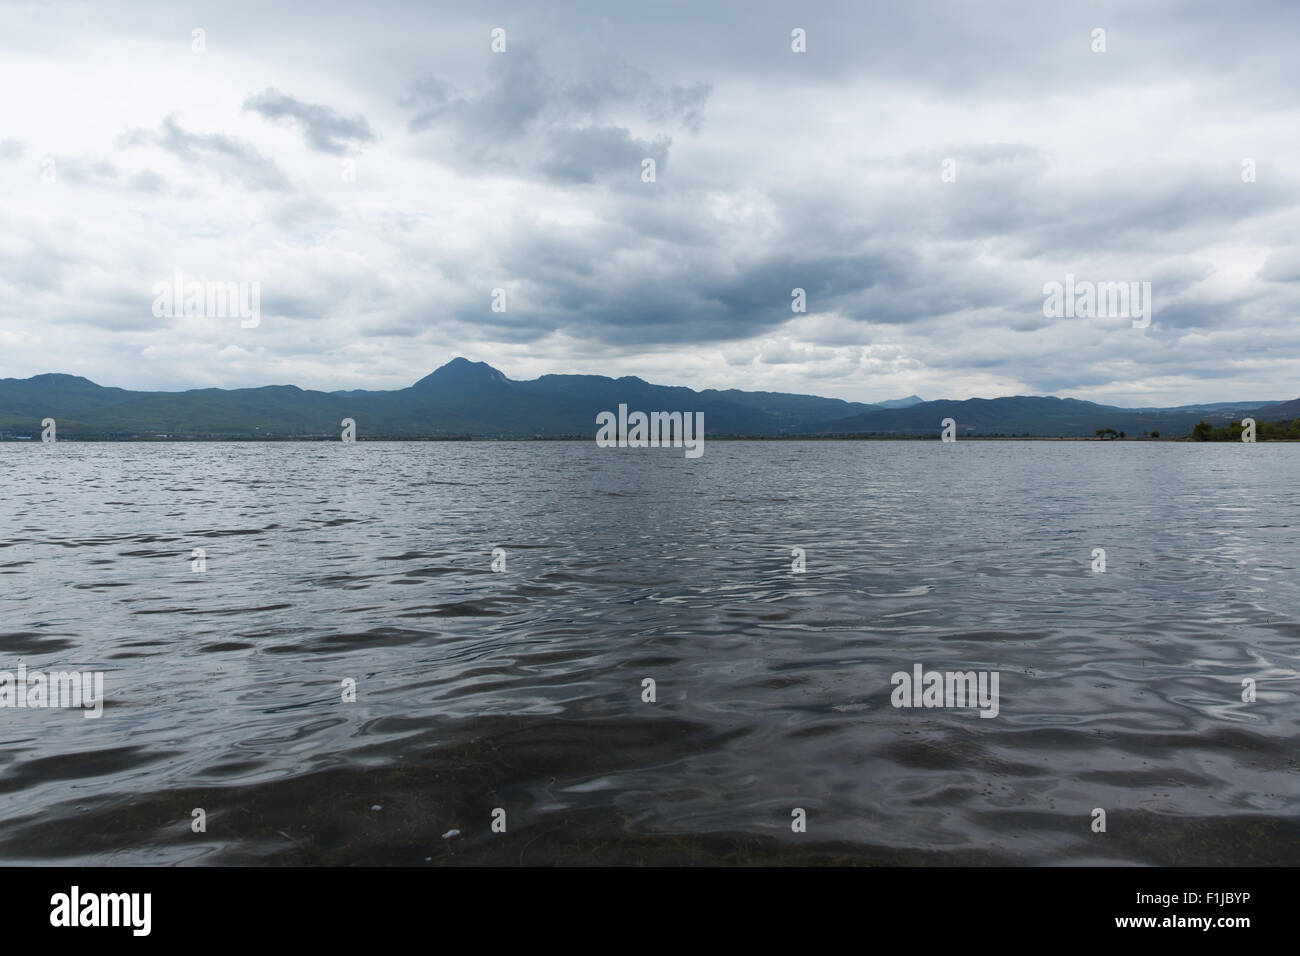 Lashihai lake in Lijiang city, Yunnan Province, China - Stock Image